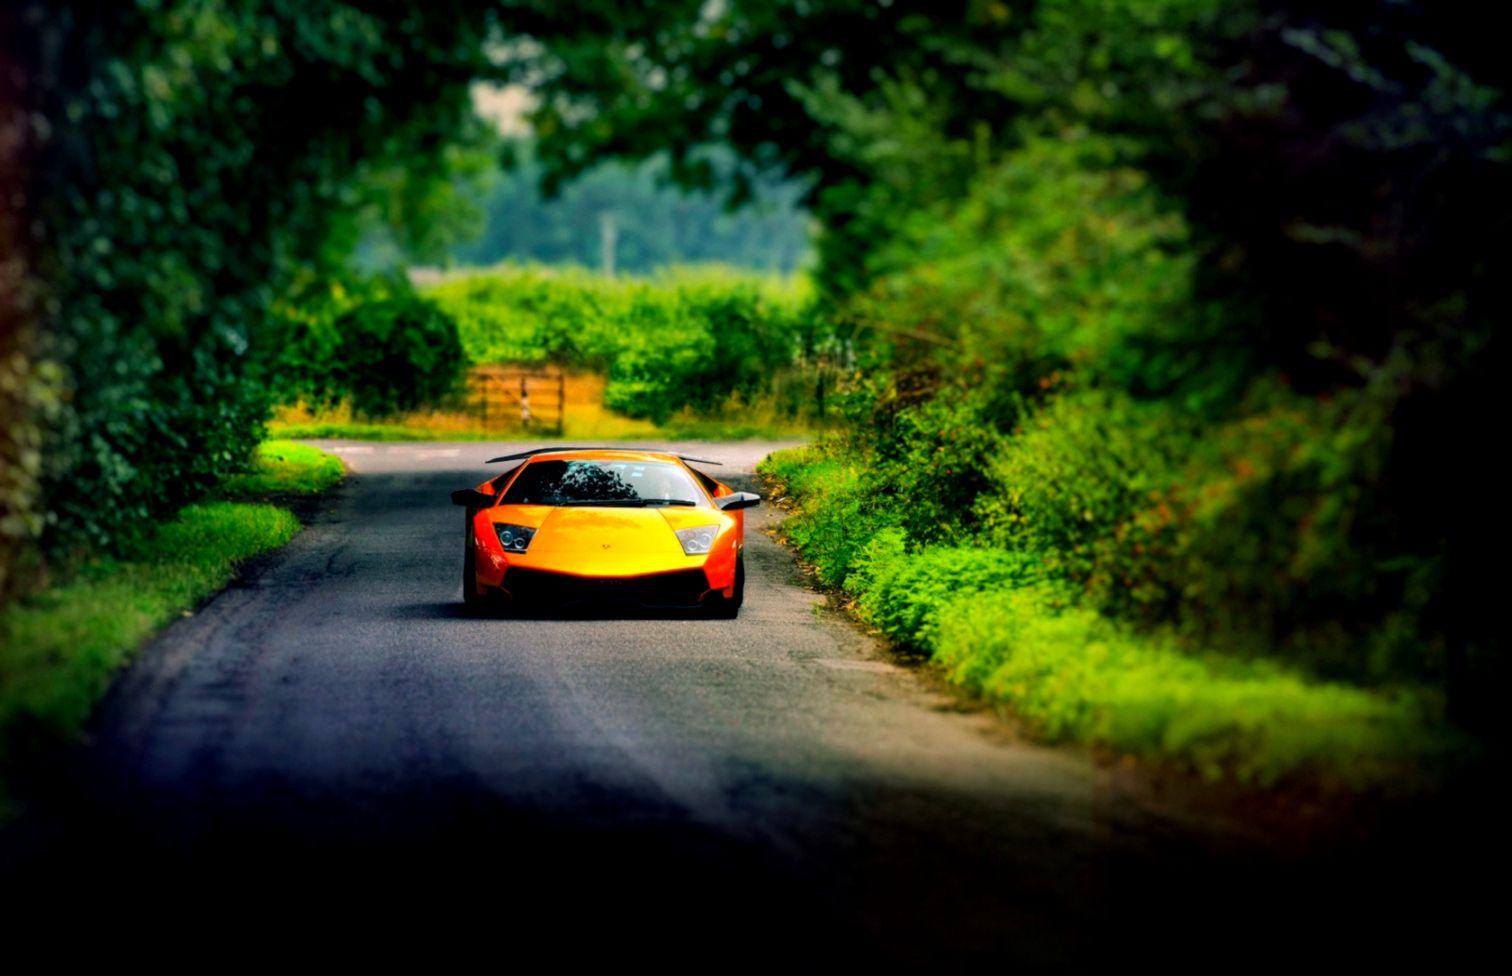 Lamborghini Murcielago Road Car Hd Wallpaper Wallpapers